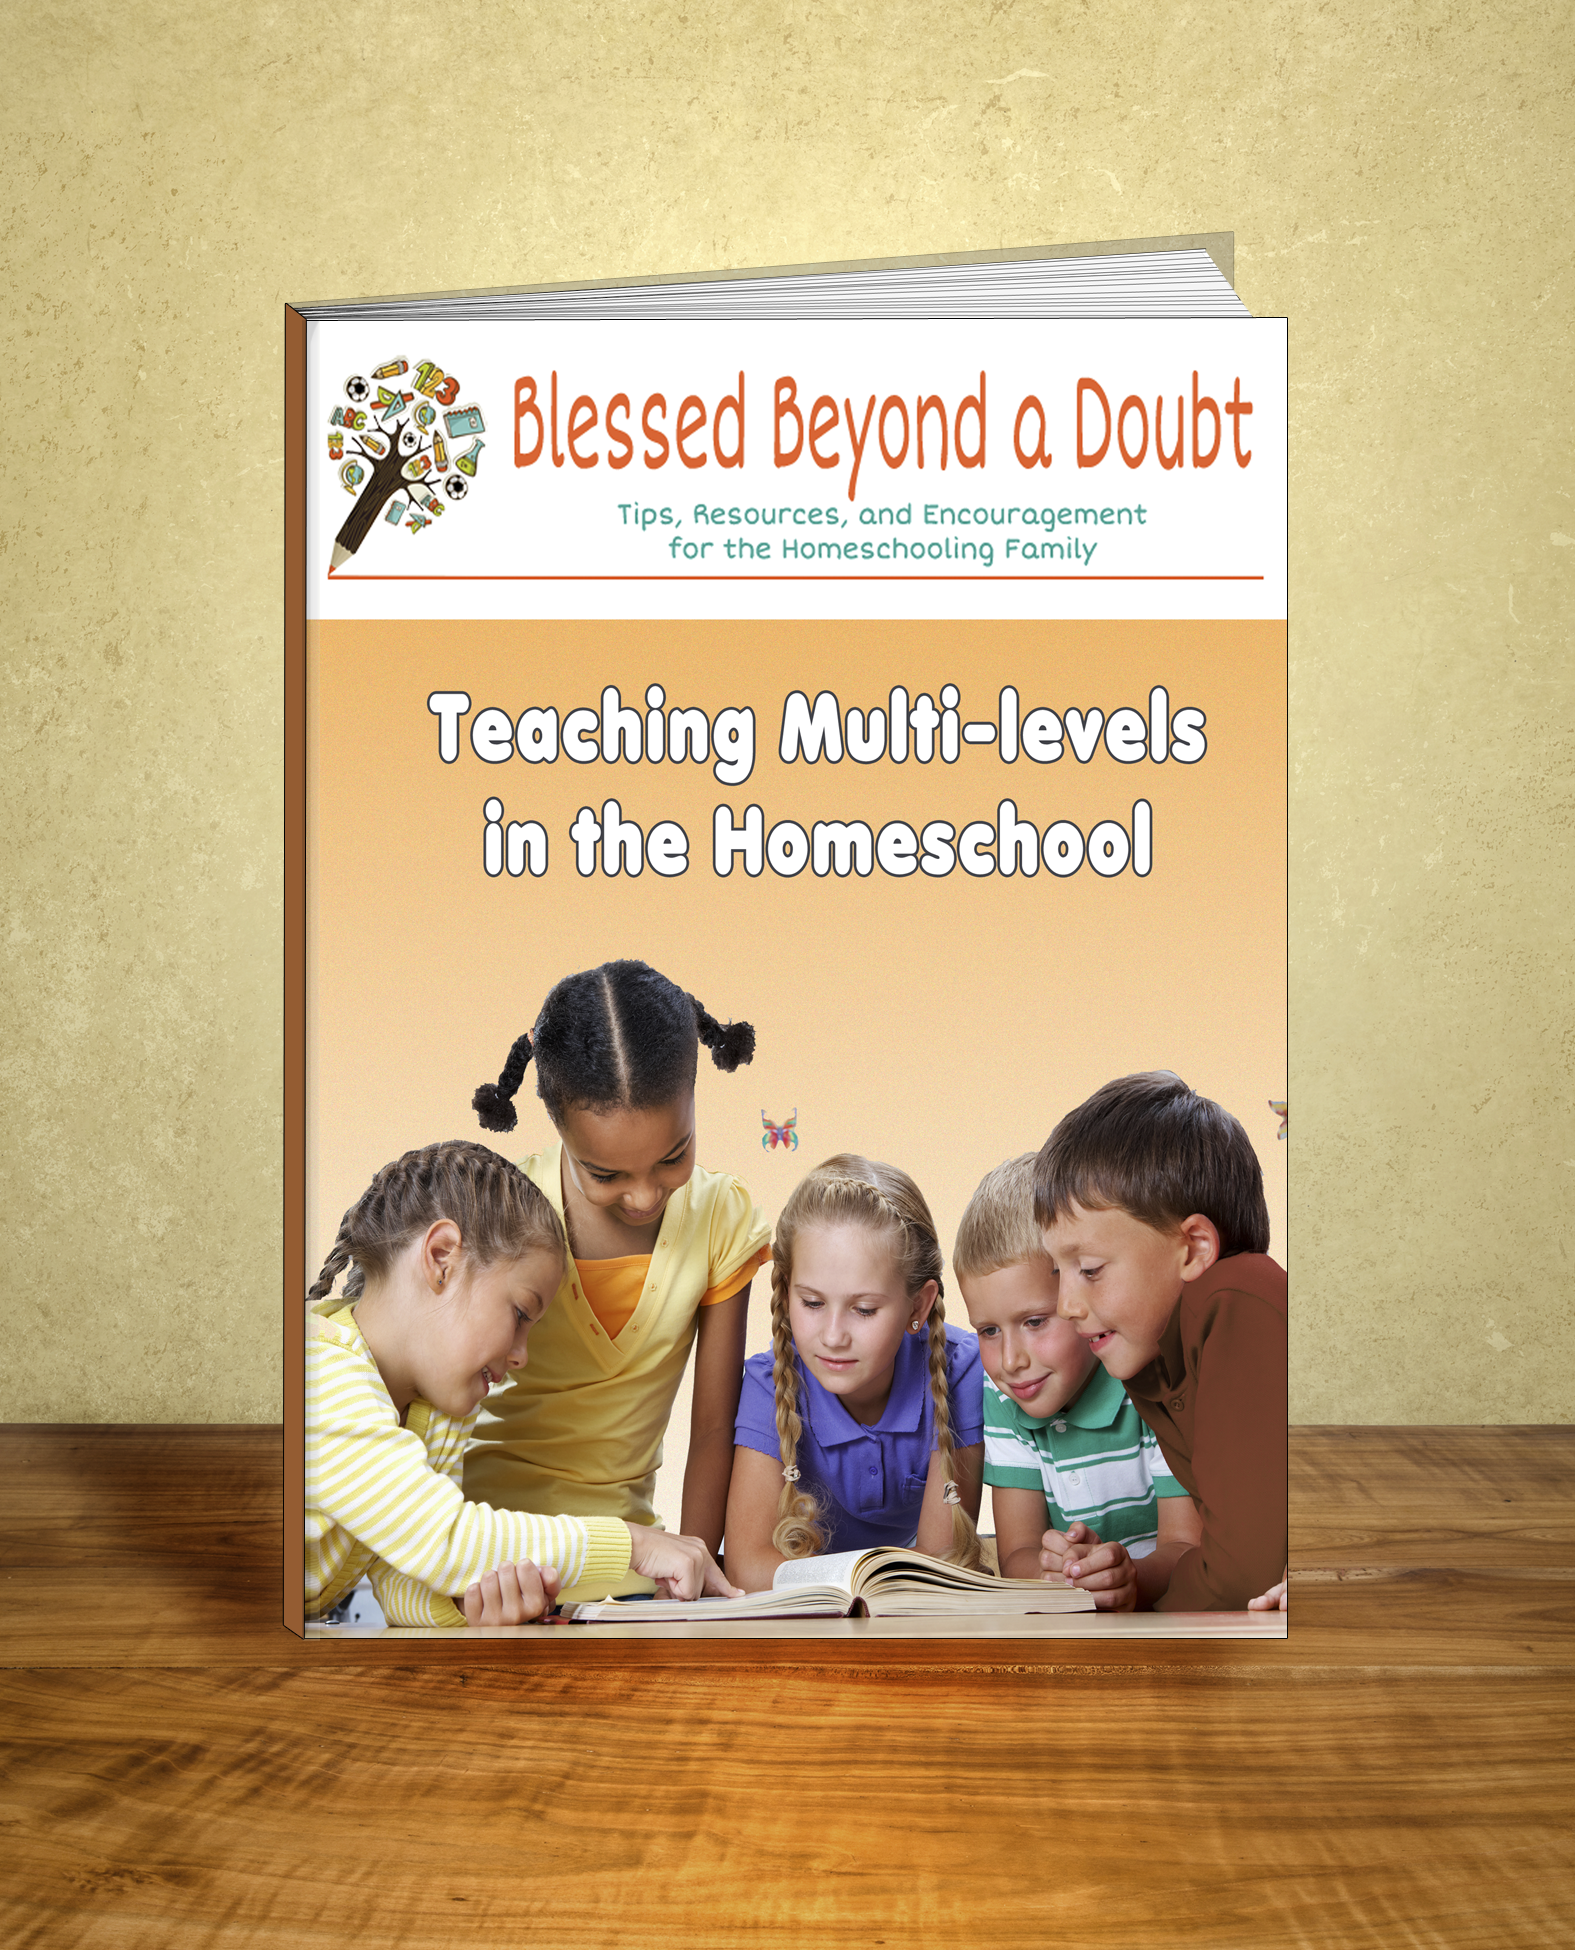 Teaching Multi-Levels in the Homeschool